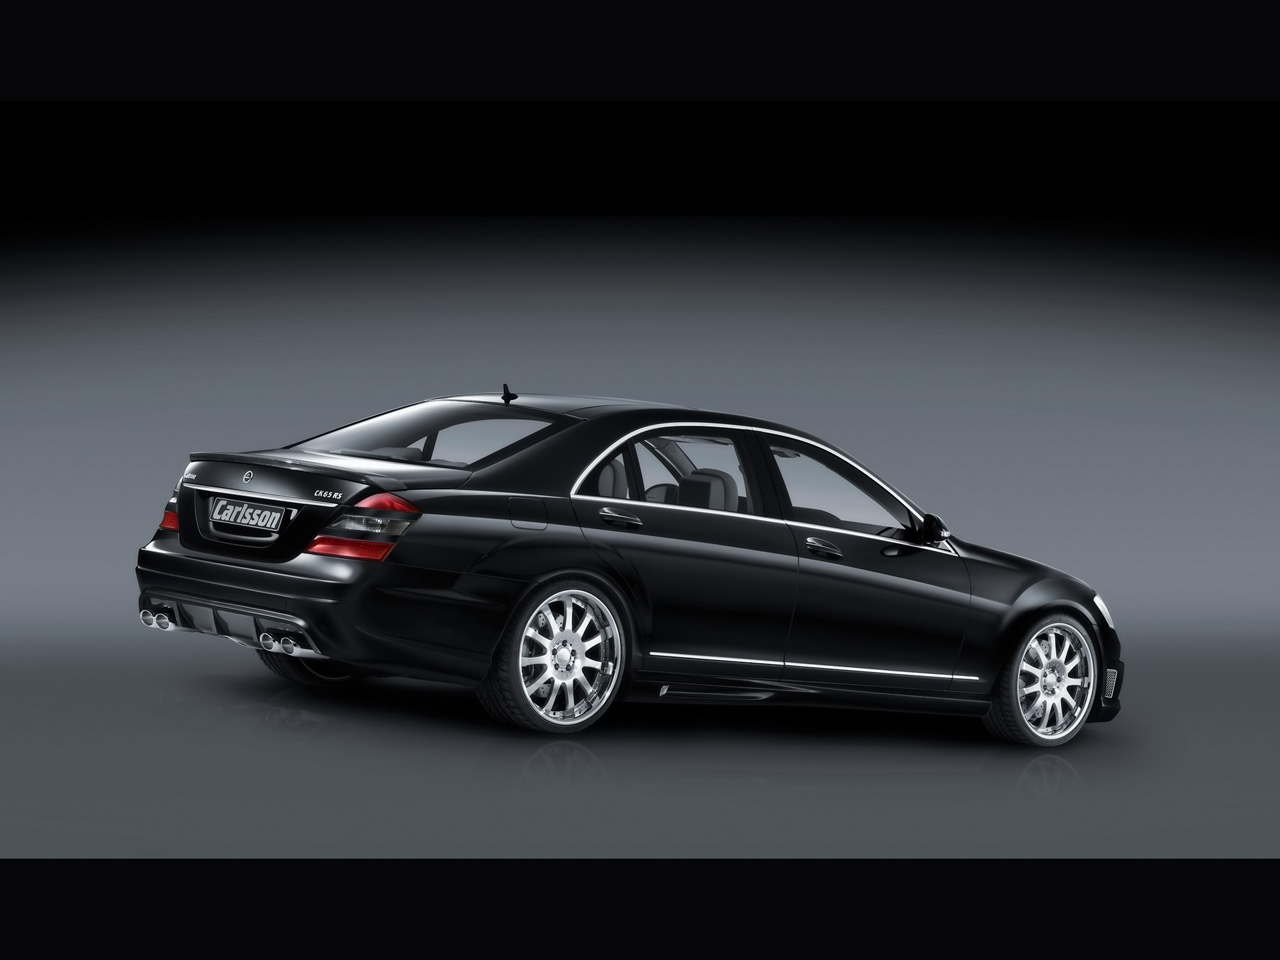 Mercedes benz models mercedes benz s class for 2009 s class mercedes benz